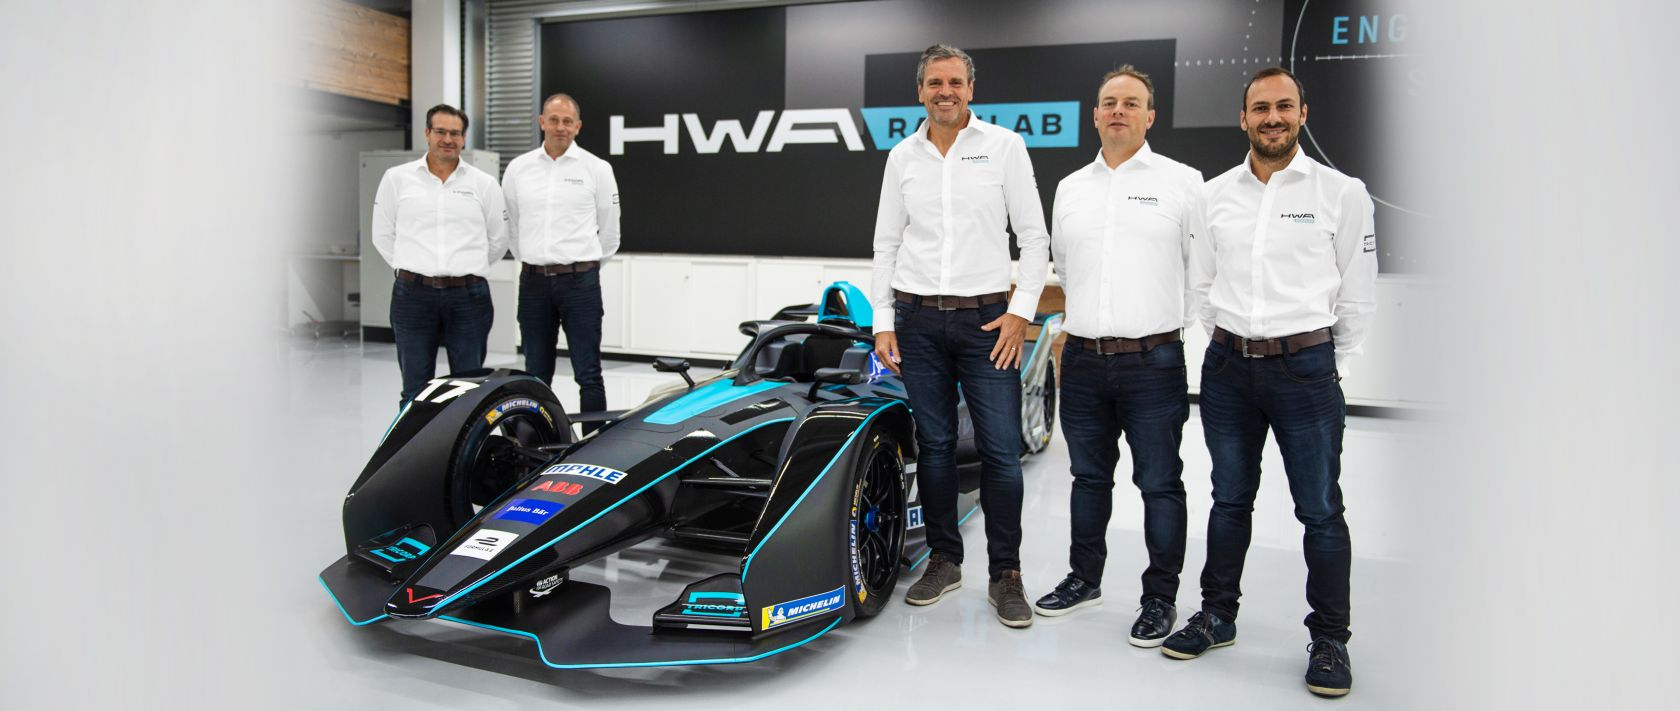 Making their debut together: the HWA Racelab team with Franco Chiocchetti (left) and team manager Ulrich Fritz (second from right).